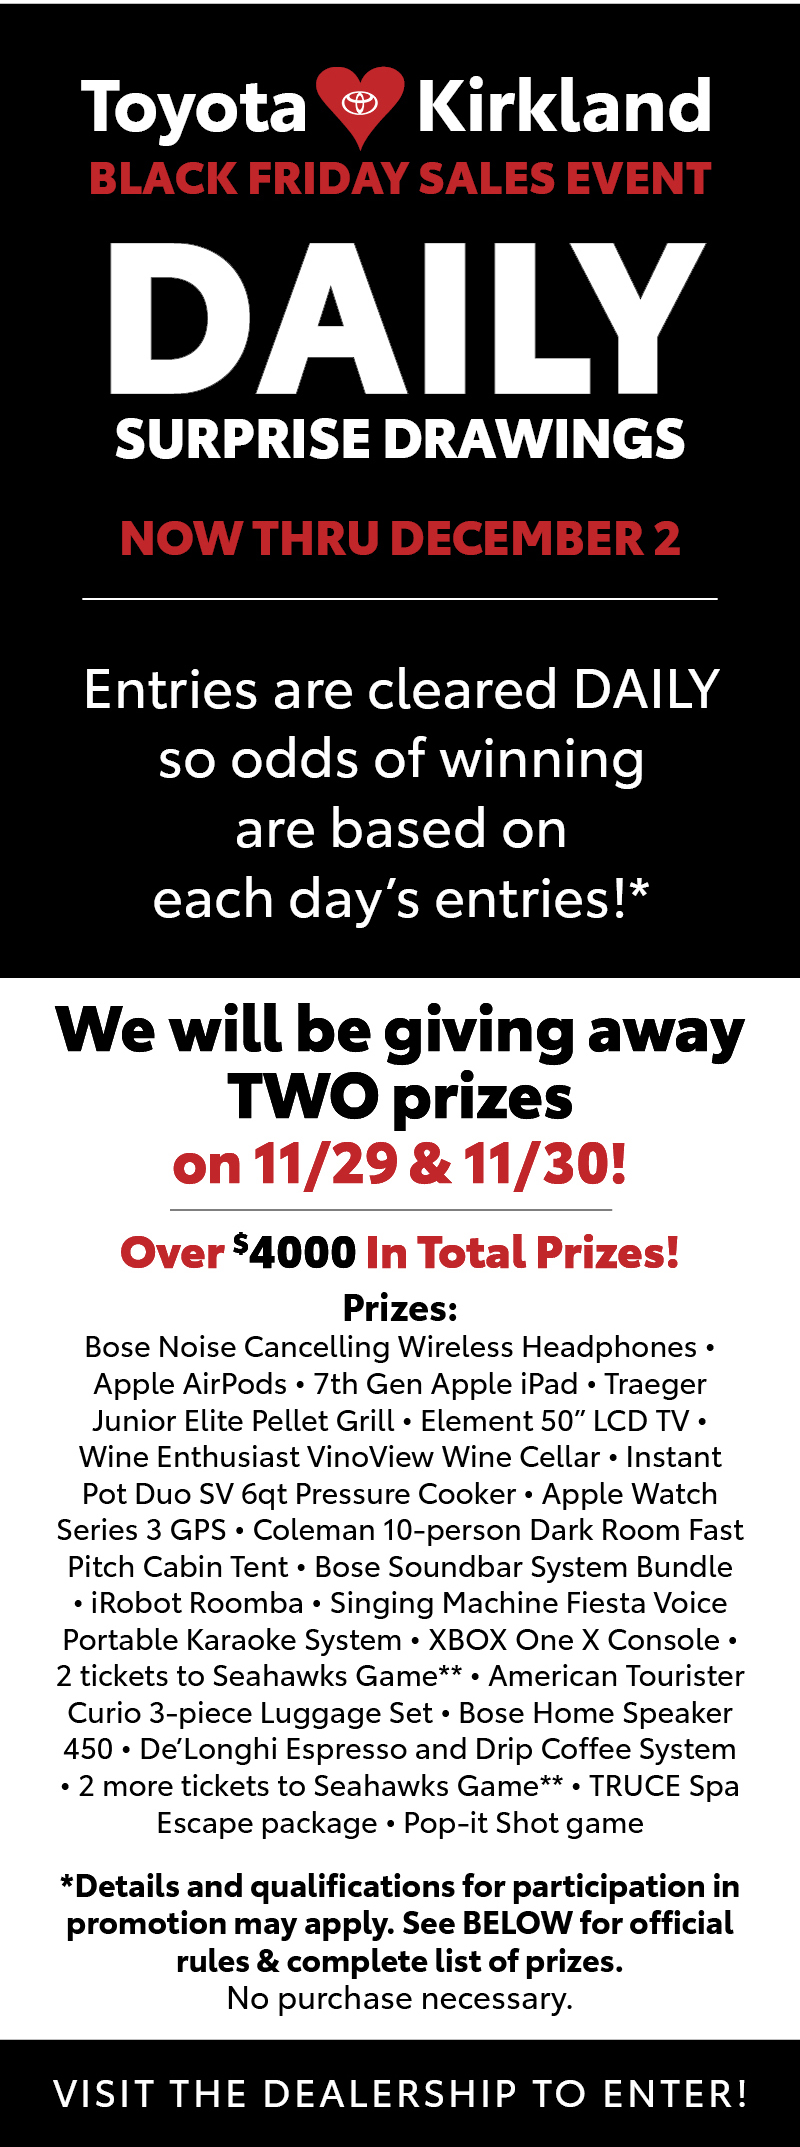 """Over $4000 In Total Prizes!Prizes:  Bose Noise Cancelling Wireless Headphones • Apple AirPods • 7th Gen Apple iPad • Traeger Junior Elite Pellet Grill • Element 50"""" LCD TV • Wine Enthusiast VinoView Wine Cellar • Instant Pot Duo SV 6qt Pressure Cooker • Apple Watch Series 3 GPS • Coleman 10-person Dark Room Fast Pitch Cabin Tent • Bose Soundbar System Bundle • iRobot Roomba • Singing Machine Fiesta Voice Portable Karaoke System • XBOX One X Console • 2 tickets to Seahawks Game** • American Tourister Curio 3-piece Luggage Set • Bose Home Speaker 450 • De'Longhi Espresso and Drip Coffee System • 2 more tickets to Seahawks Game** *Details and qualifications for participation in promotion may apply. See BELOW for official rules & complete list of prizes. No purchase necessary.VISIT THE DEALERSHIP TO ENTER"""